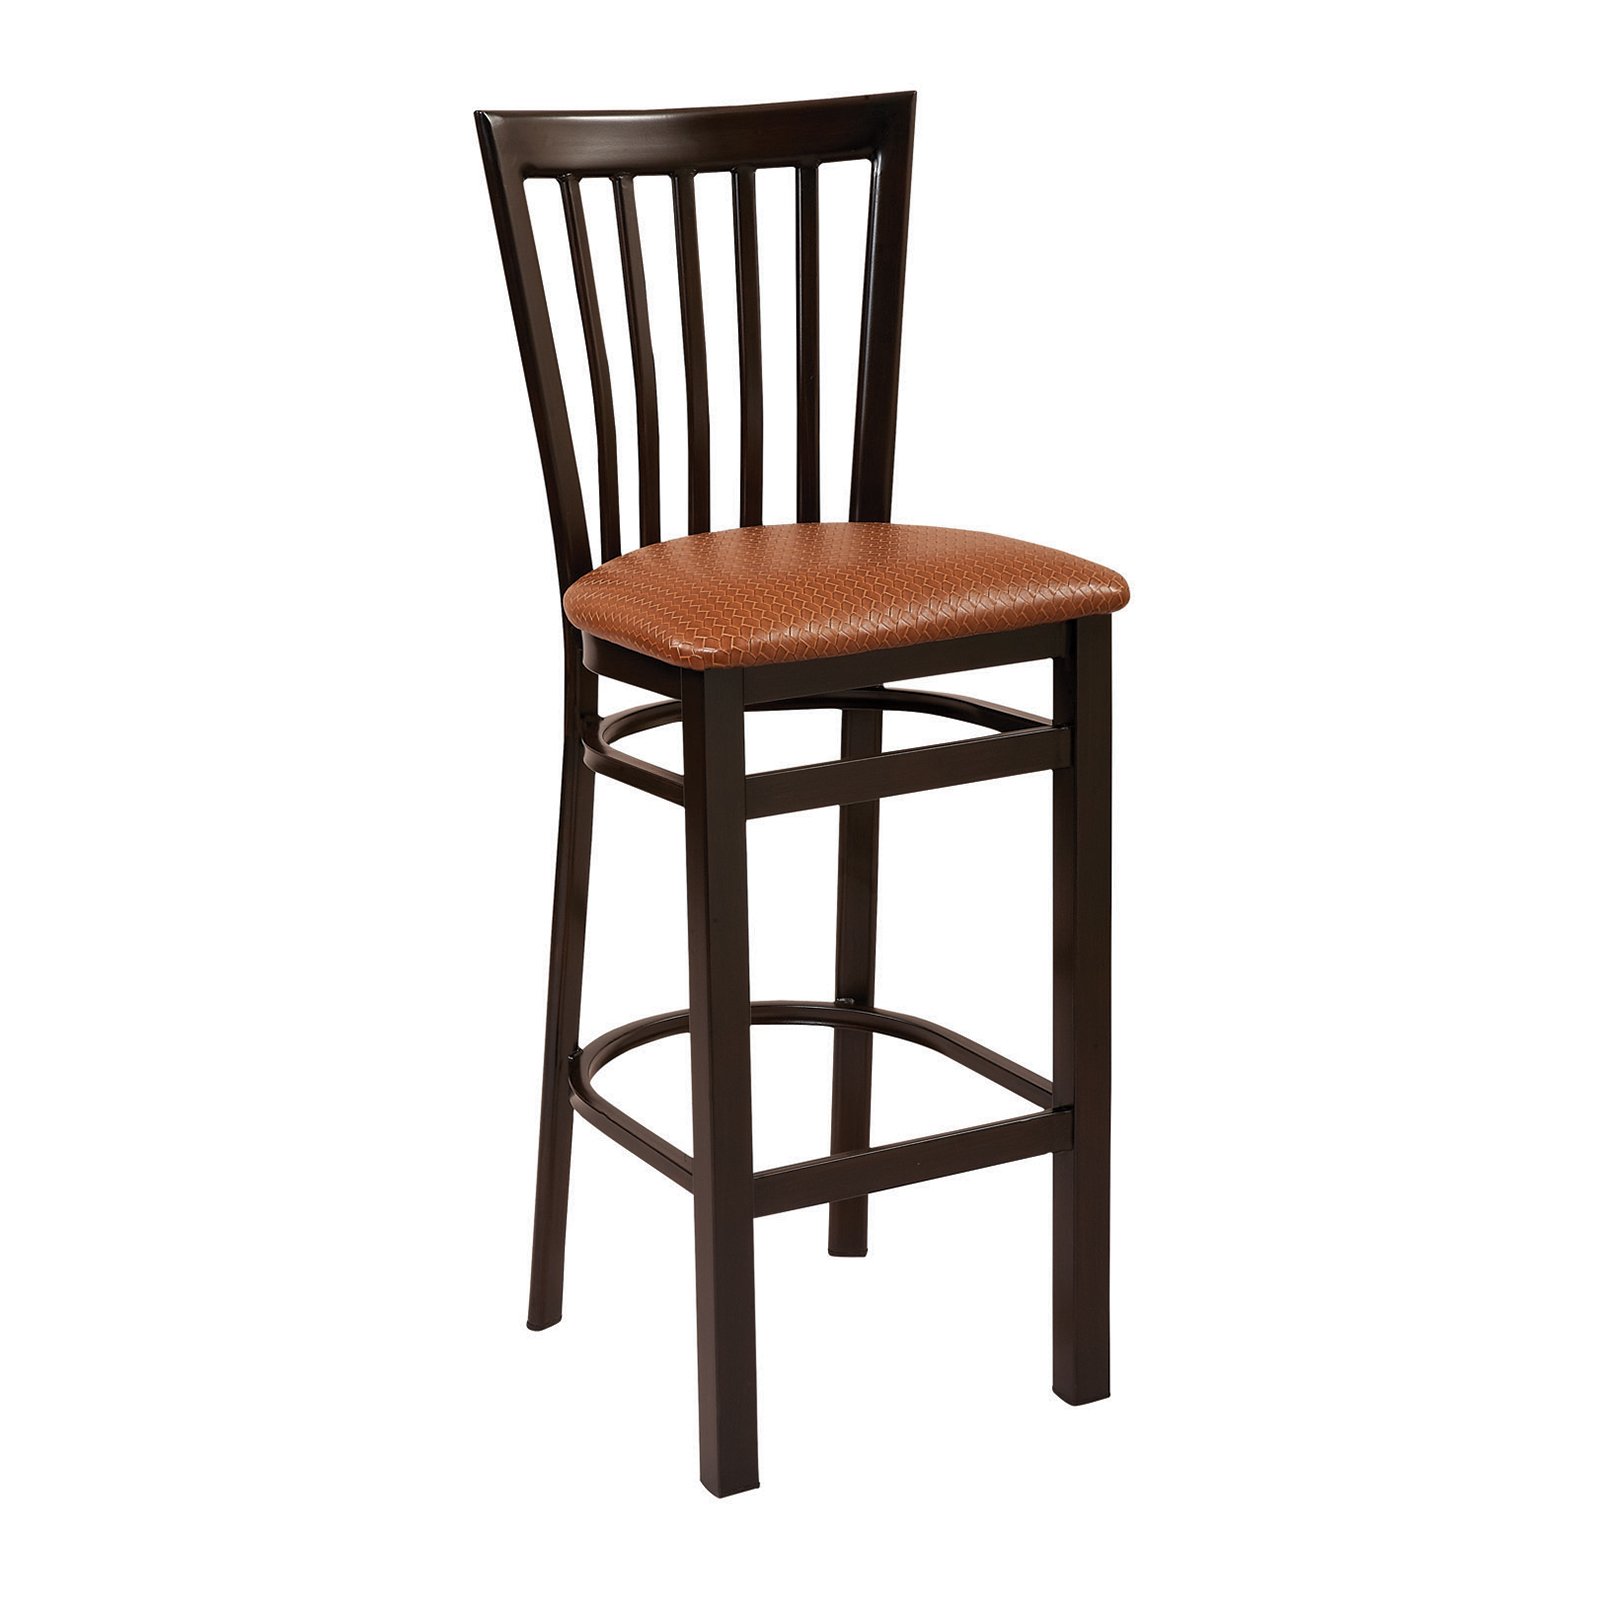 G & A Commercial Seating 635-W PS bar stool, indoor